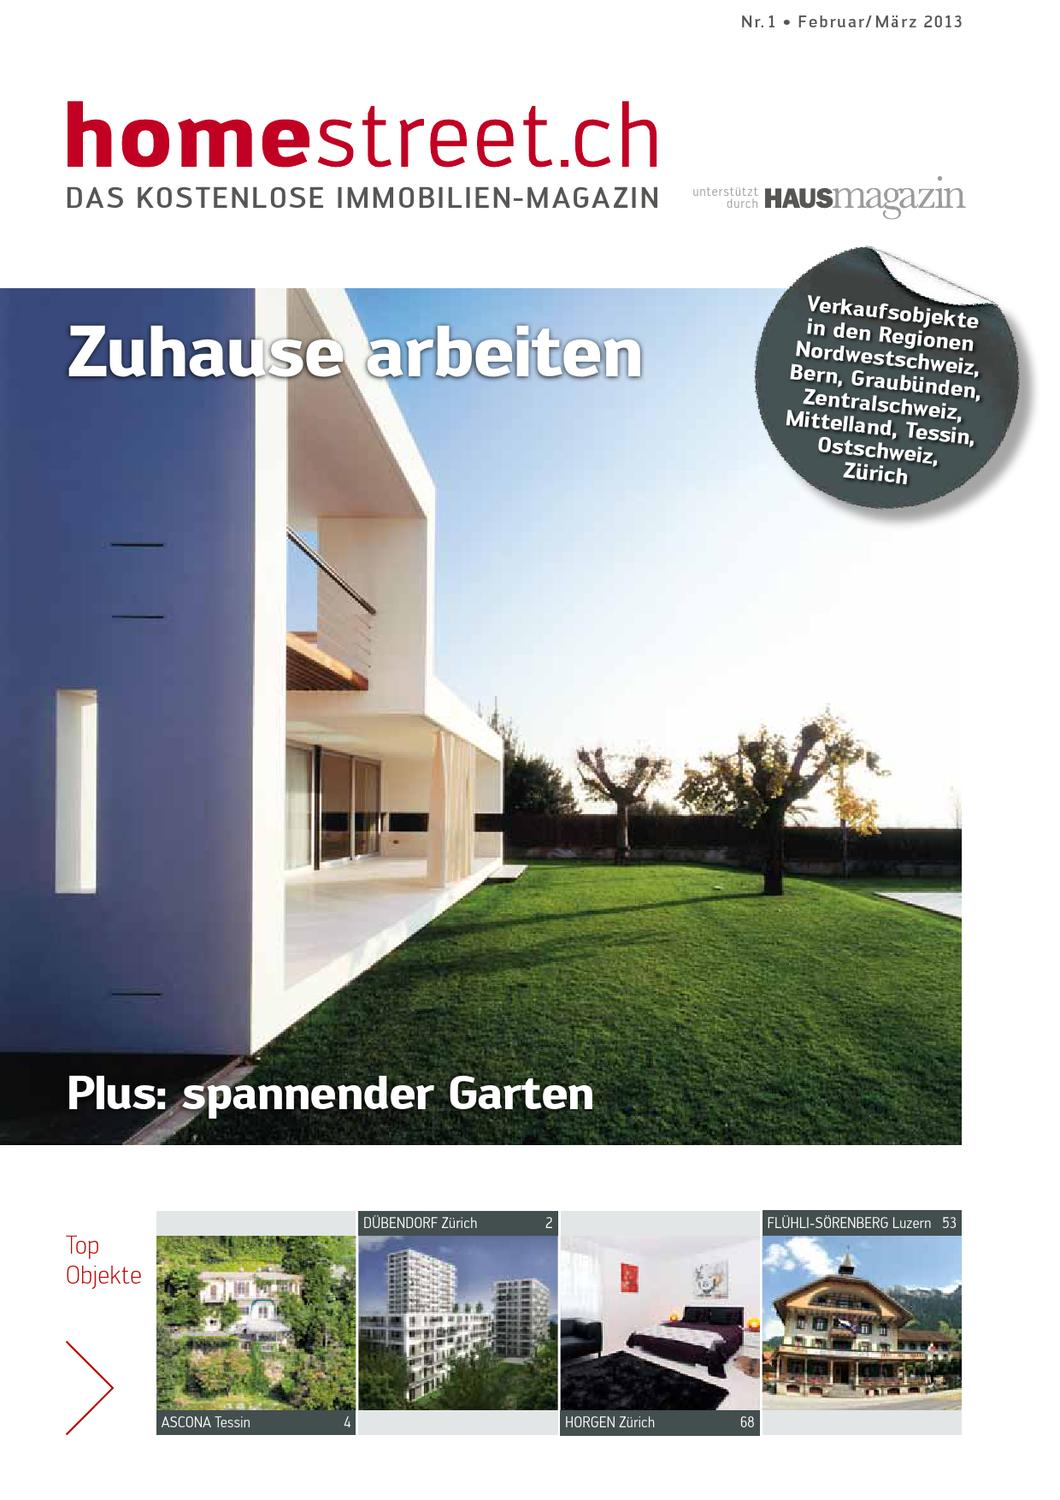 Remax news zuerisee 30 09 13 low a by Theo Favetto - issuu